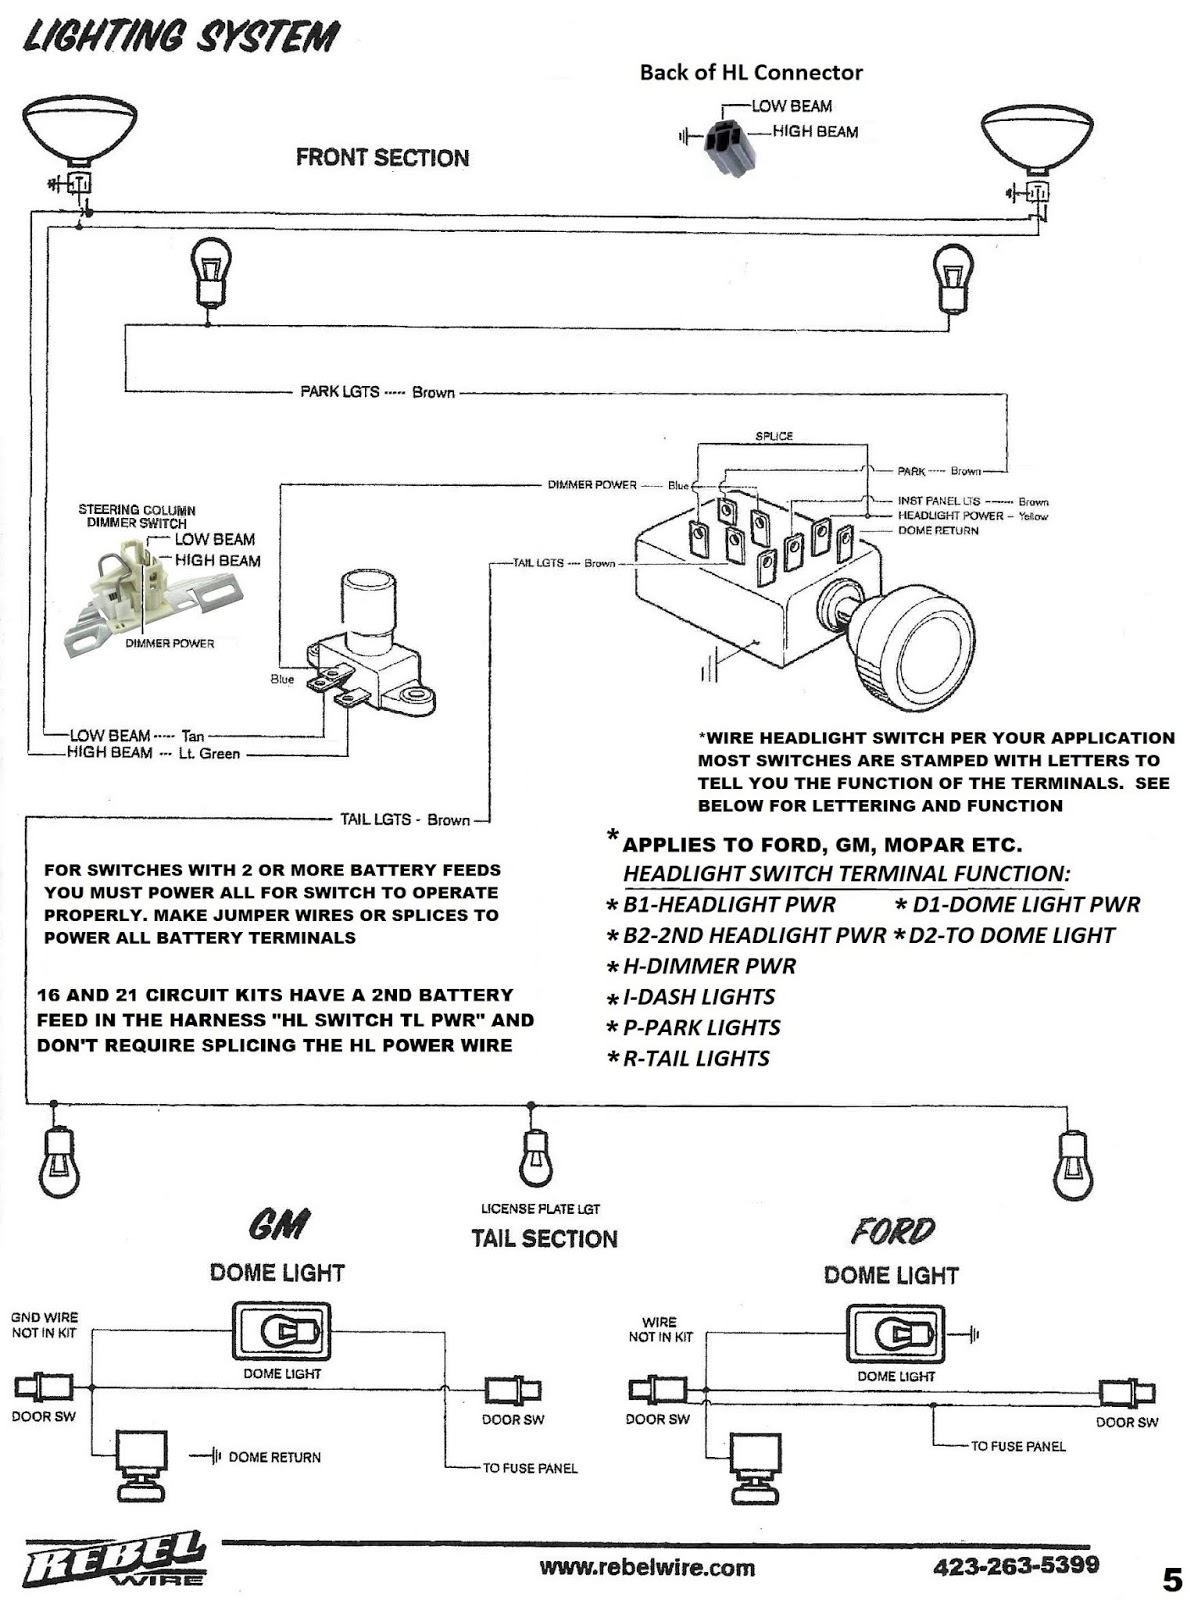 Headlamp Switch Wiring Diagram Wiring Library